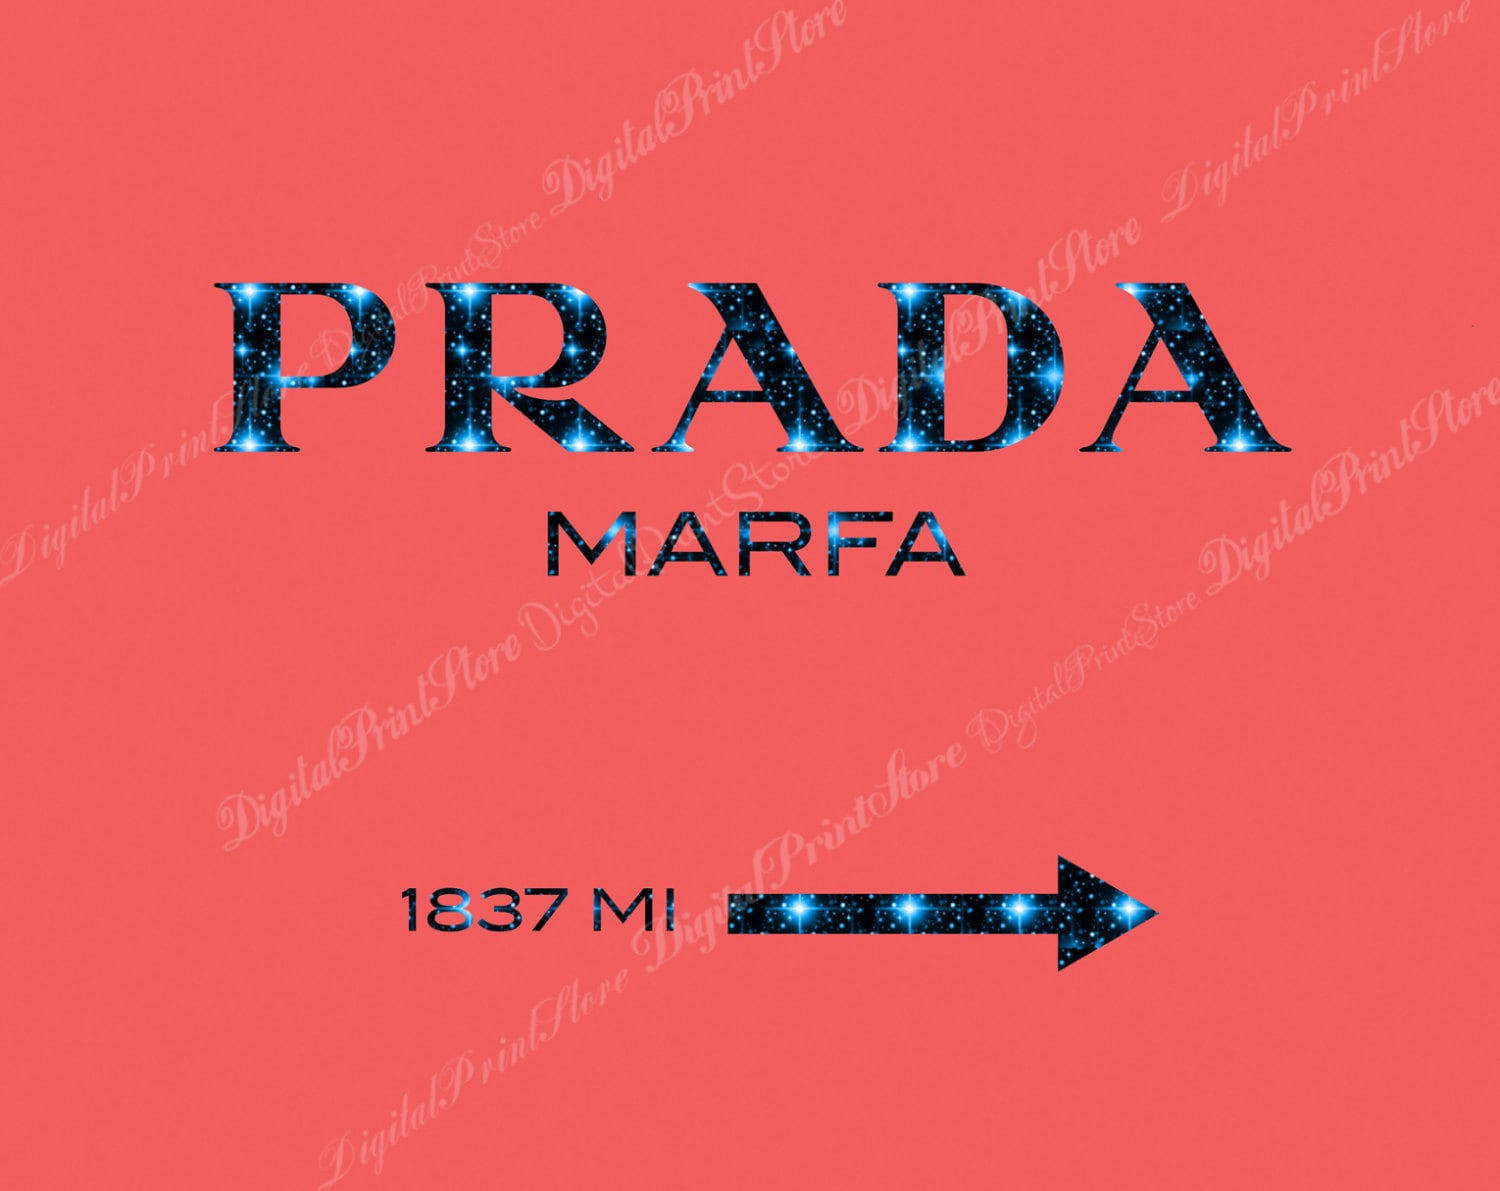 prada marfa 04 prada marfa print prada glitter wall fashion. Black Bedroom Furniture Sets. Home Design Ideas